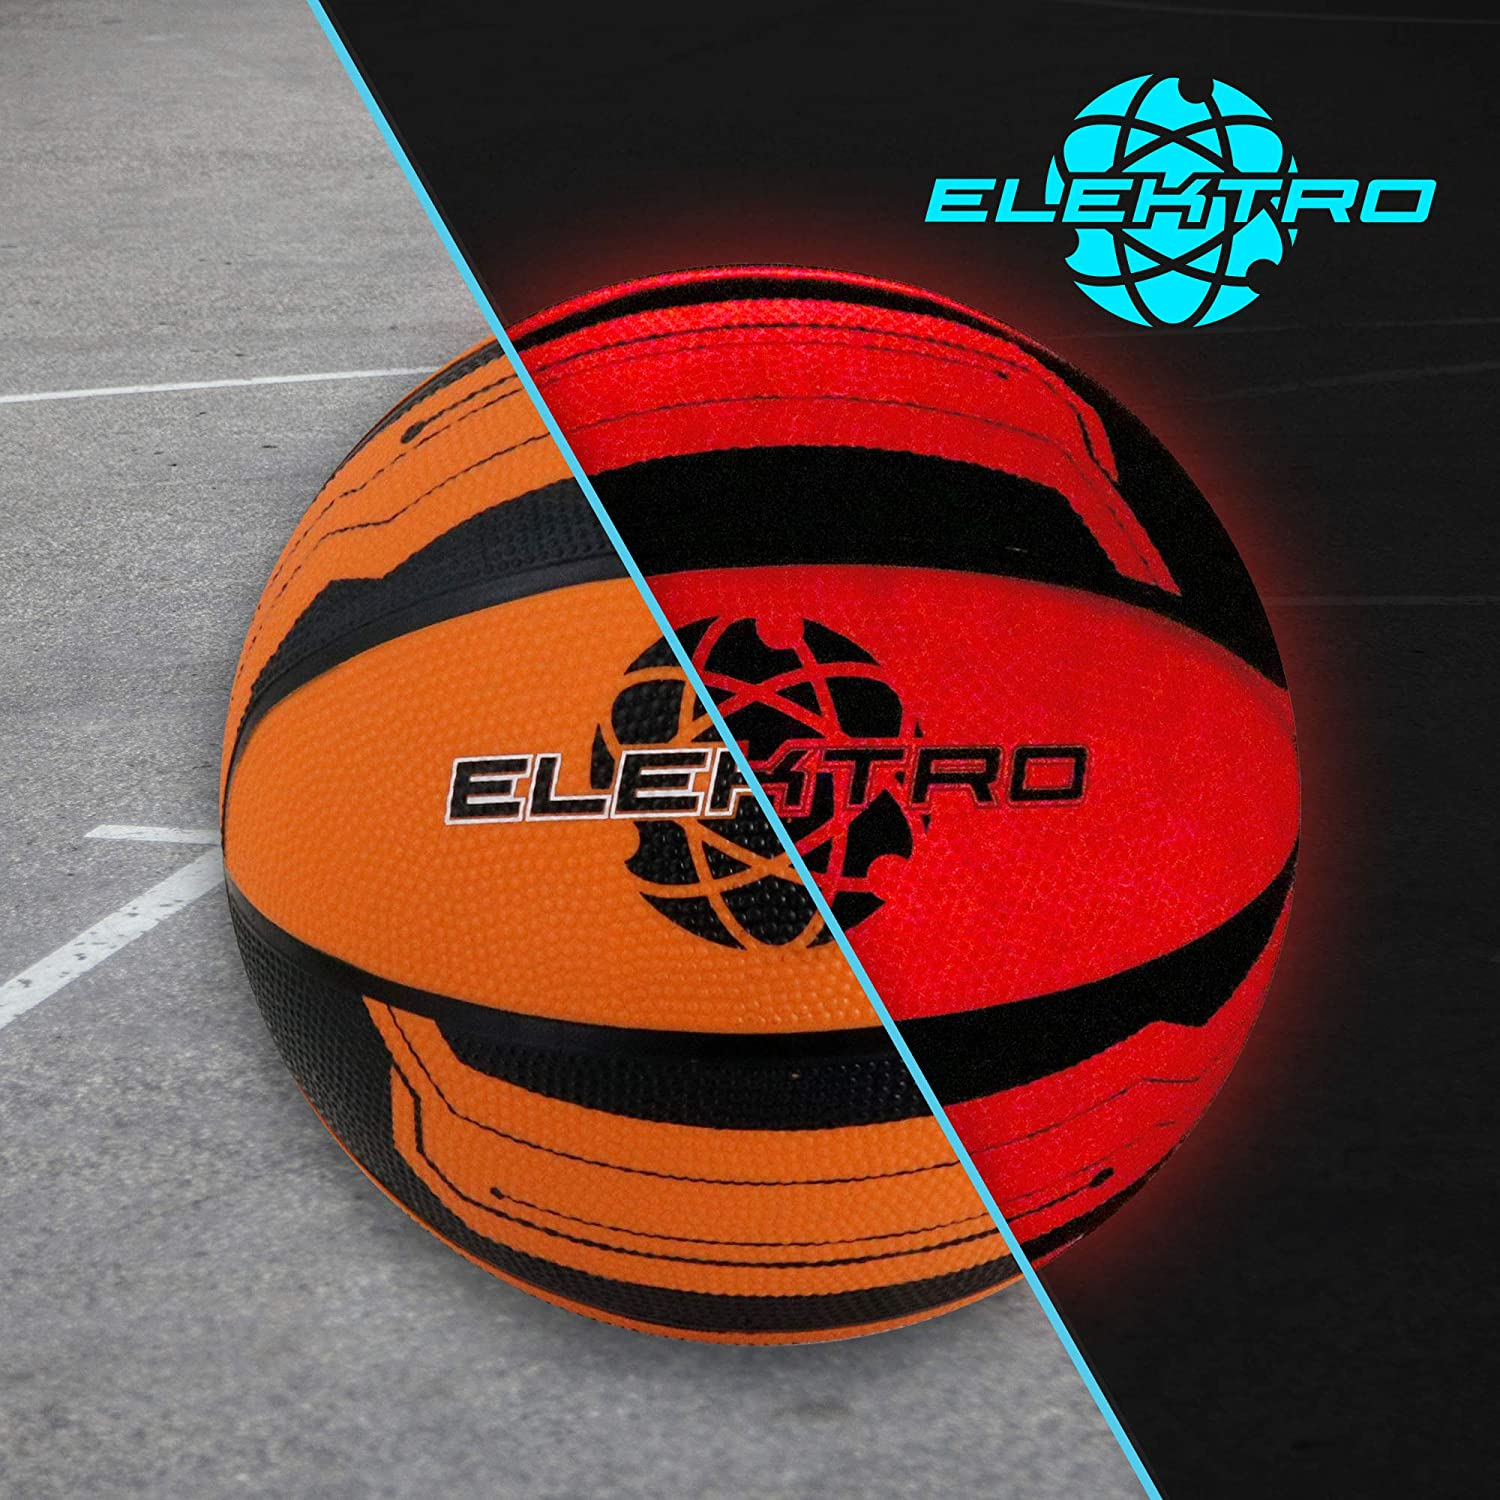 Baden Elektro Light Up LED Basketball (Official Size 7)